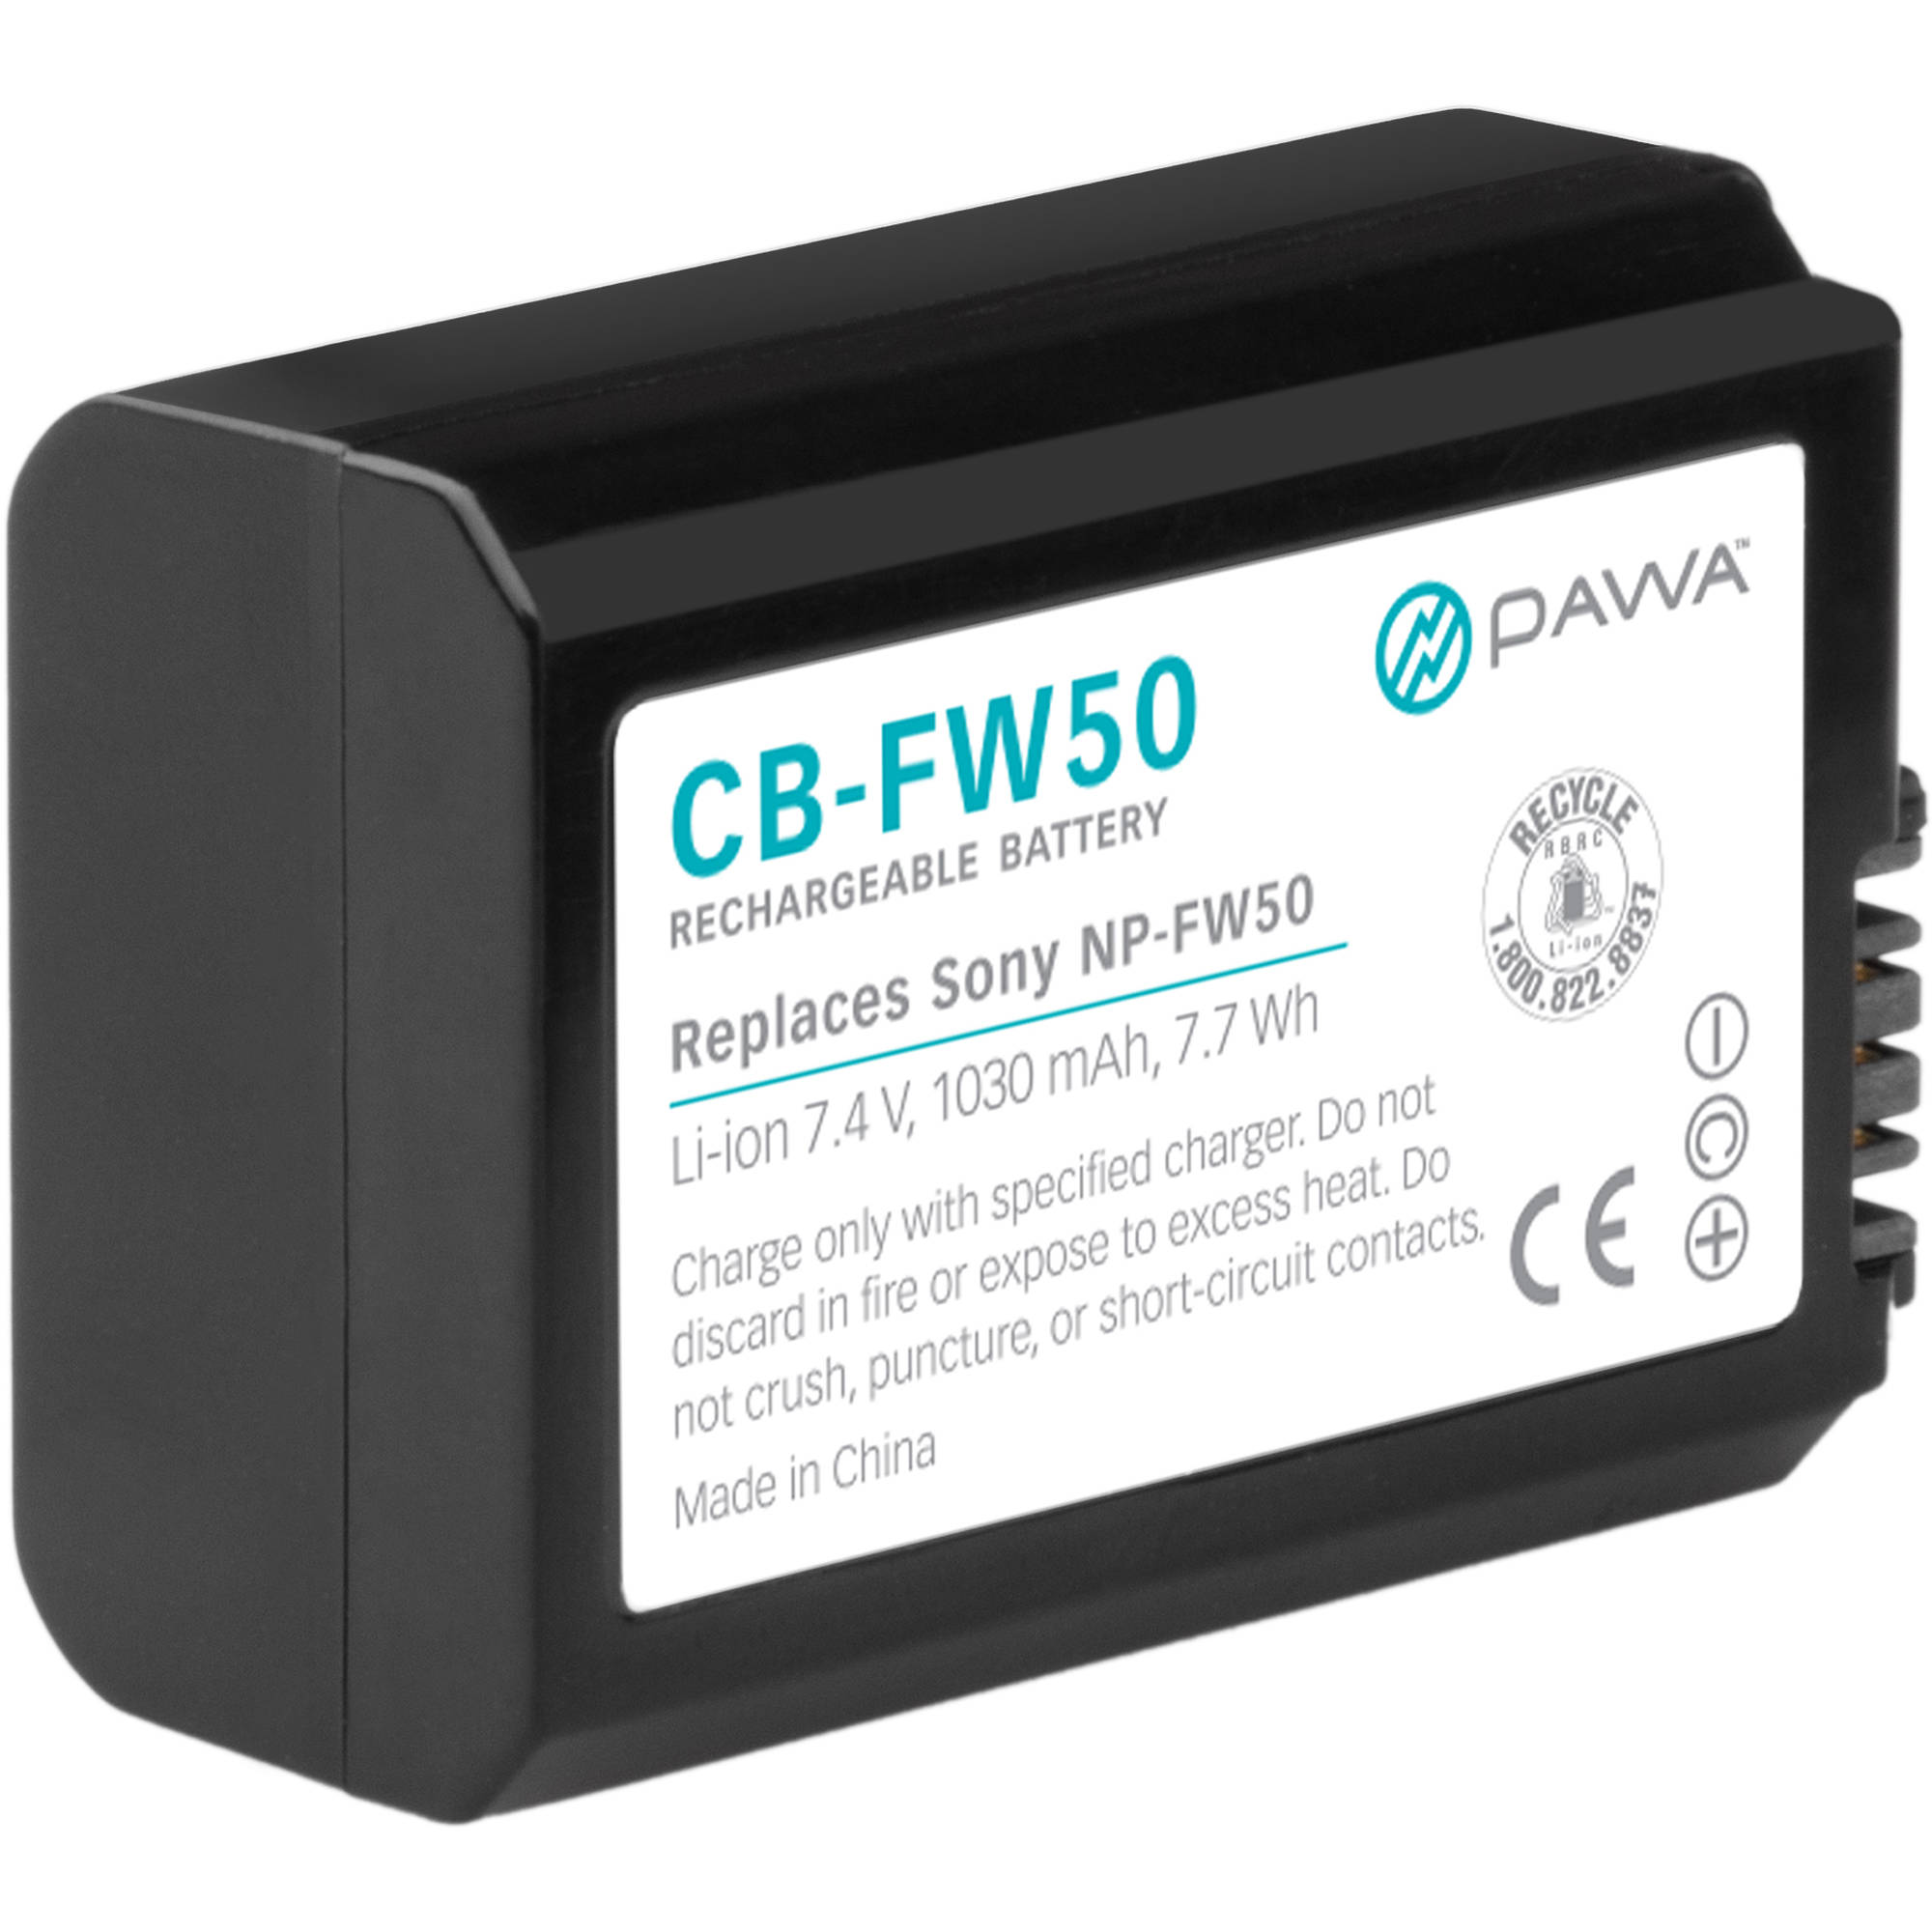 Lithium Ion Battery Pack Pawa NP-FW50 Li...